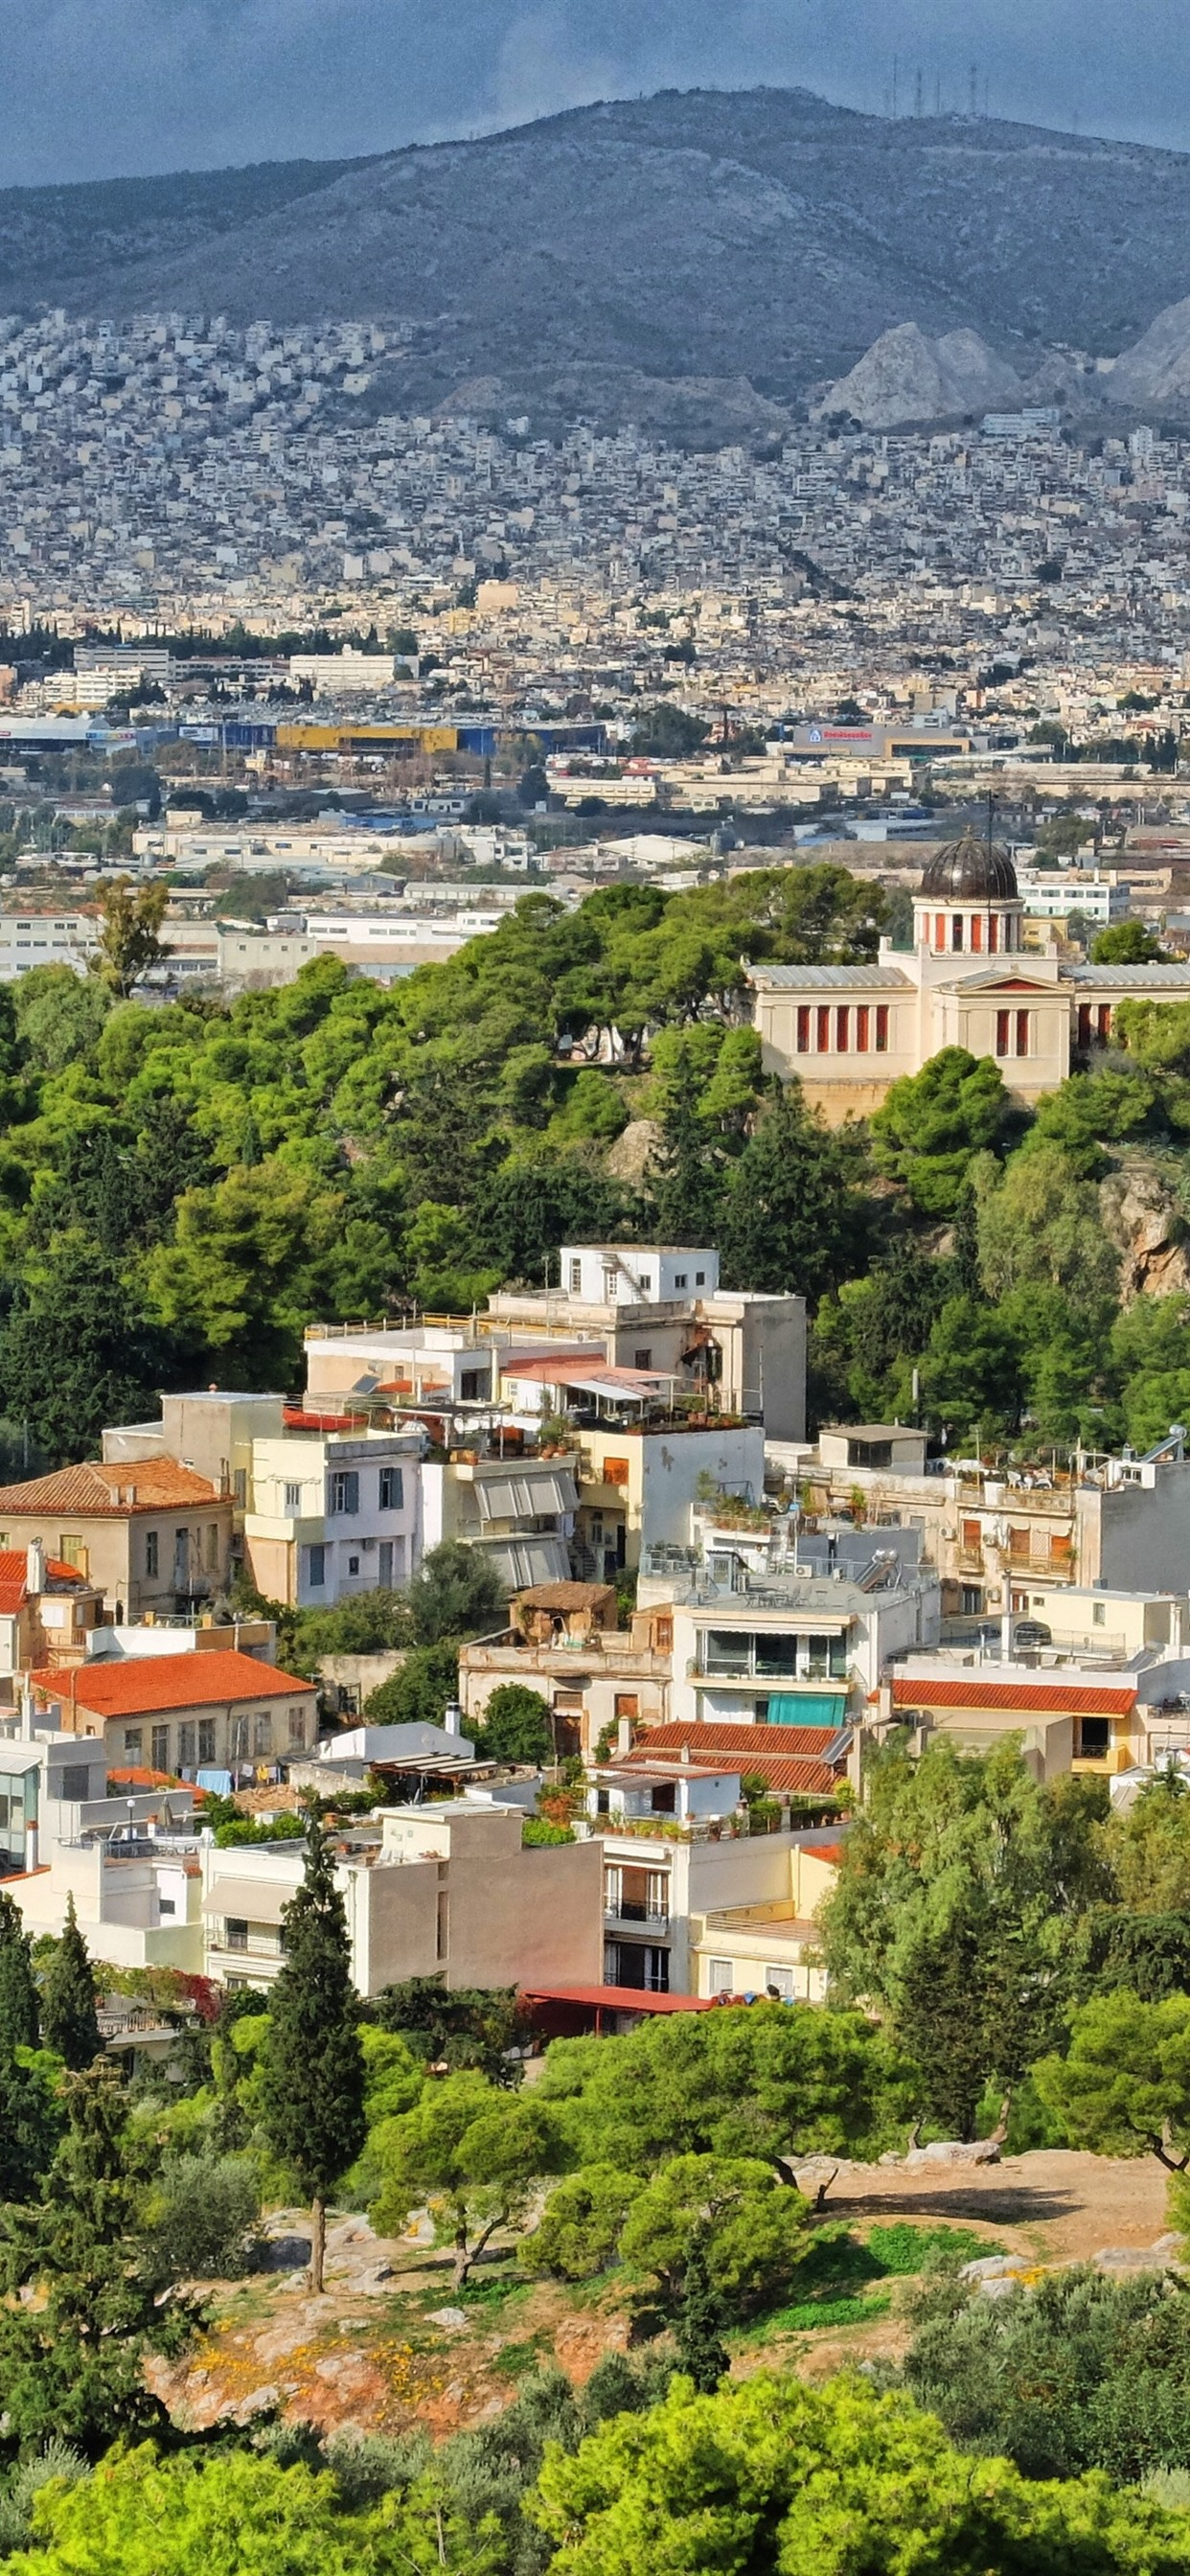 Greece City Houses Trees 1242x2688 Iphone 11 Pro Xs Max Wallpaper Background Picture Image